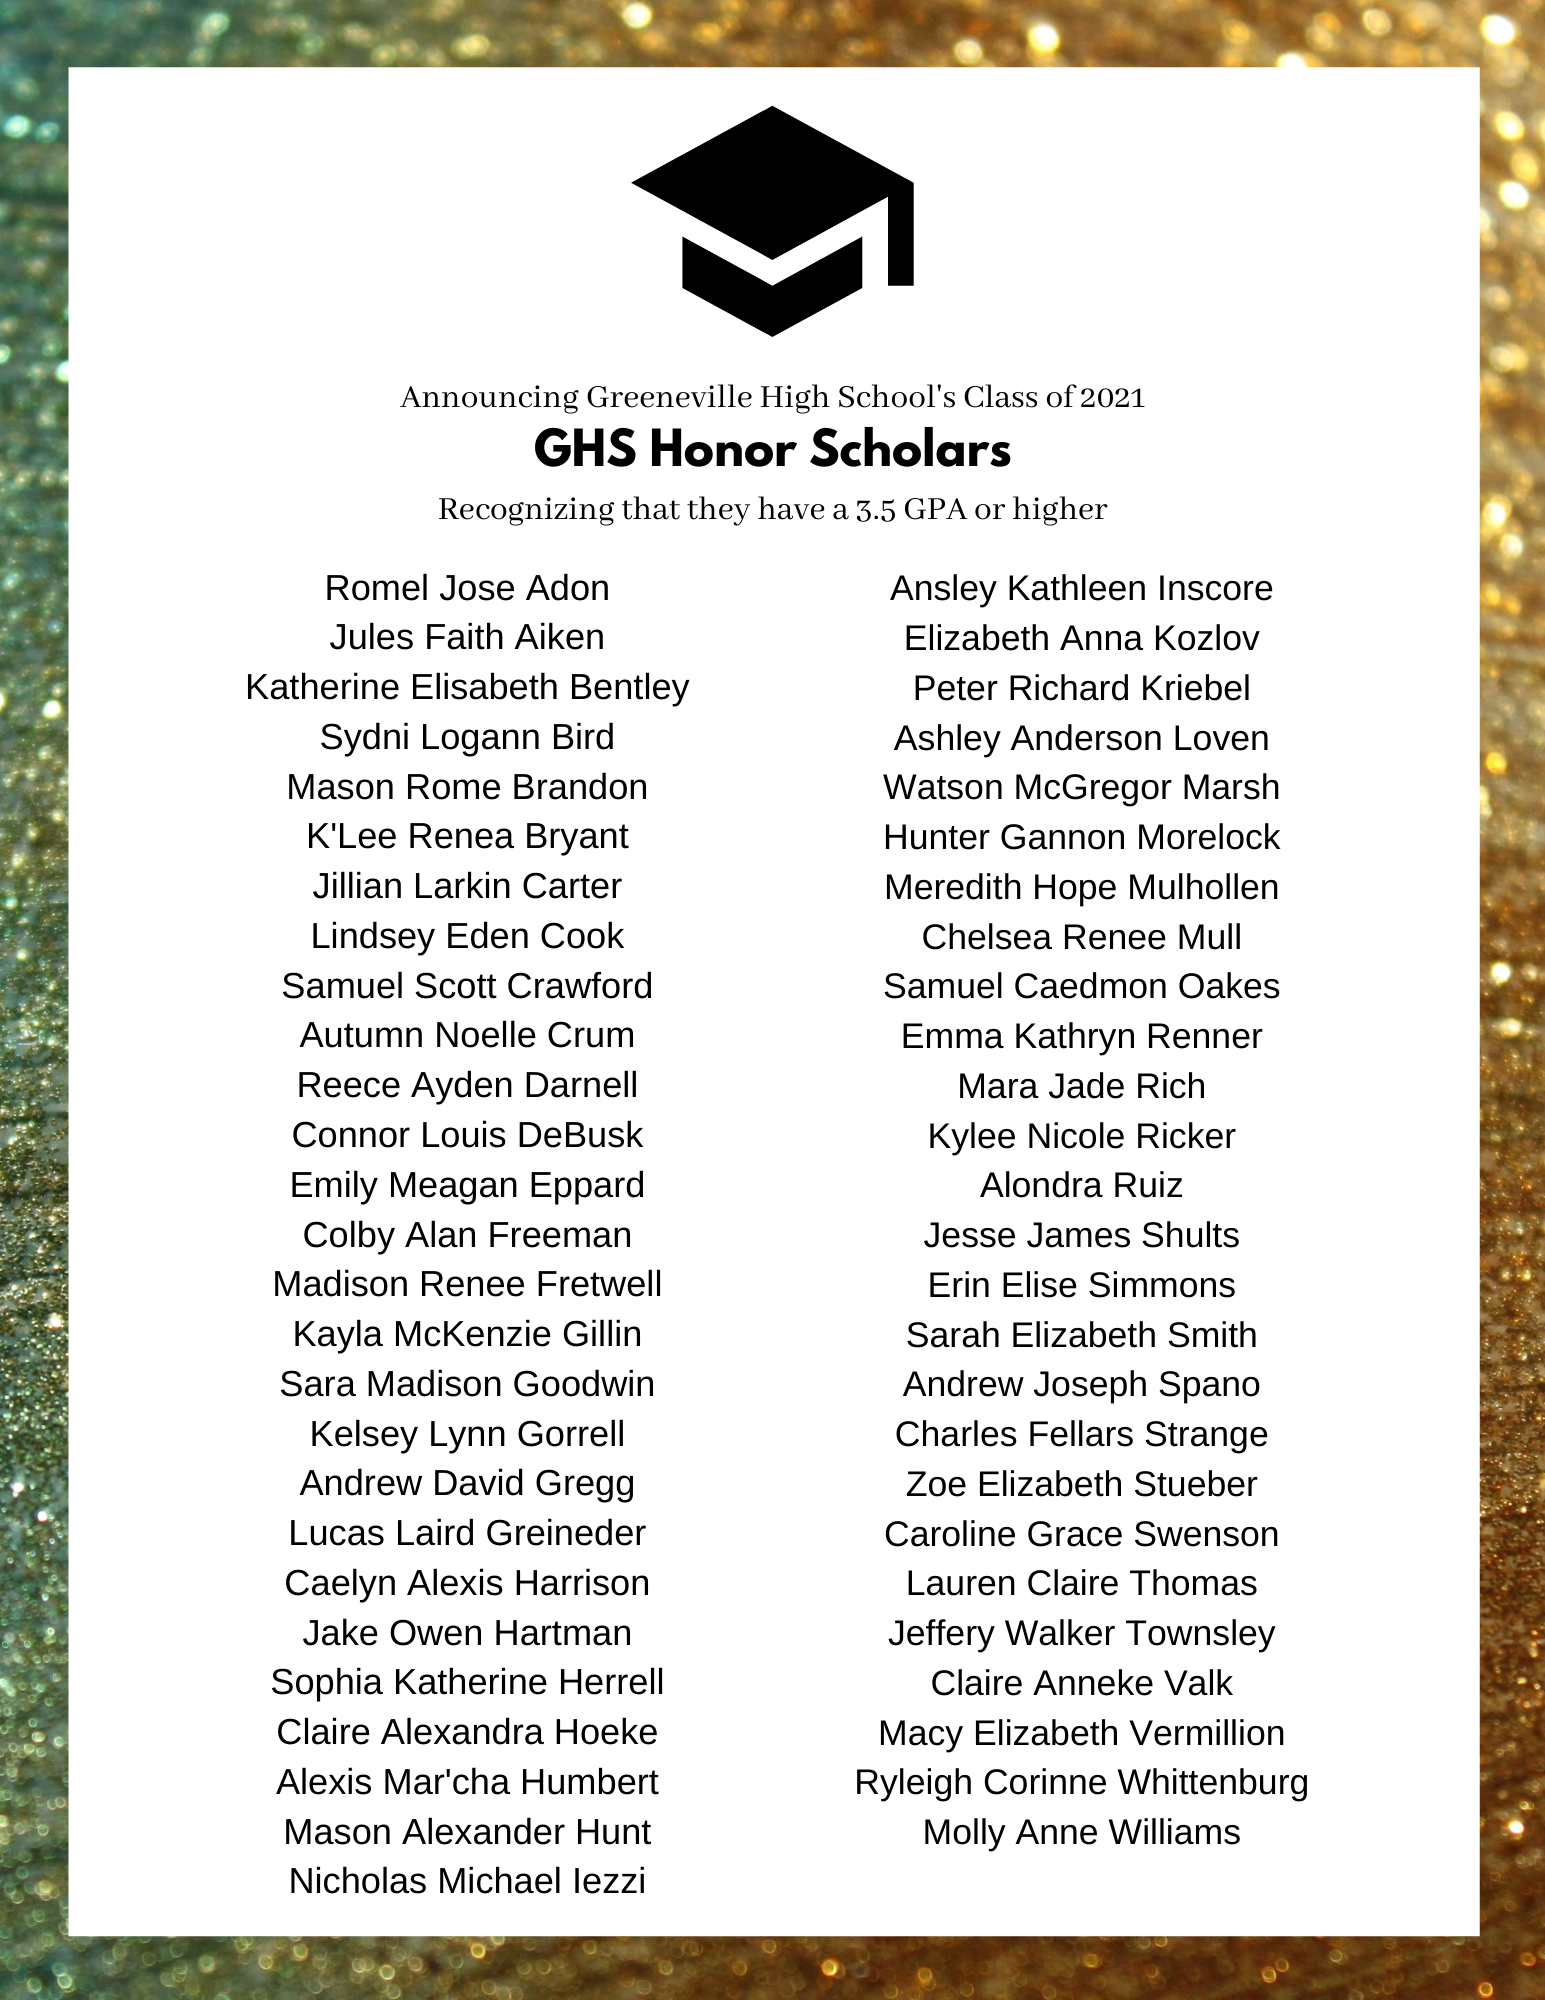 Class of 2021 GHS Honor Scholars